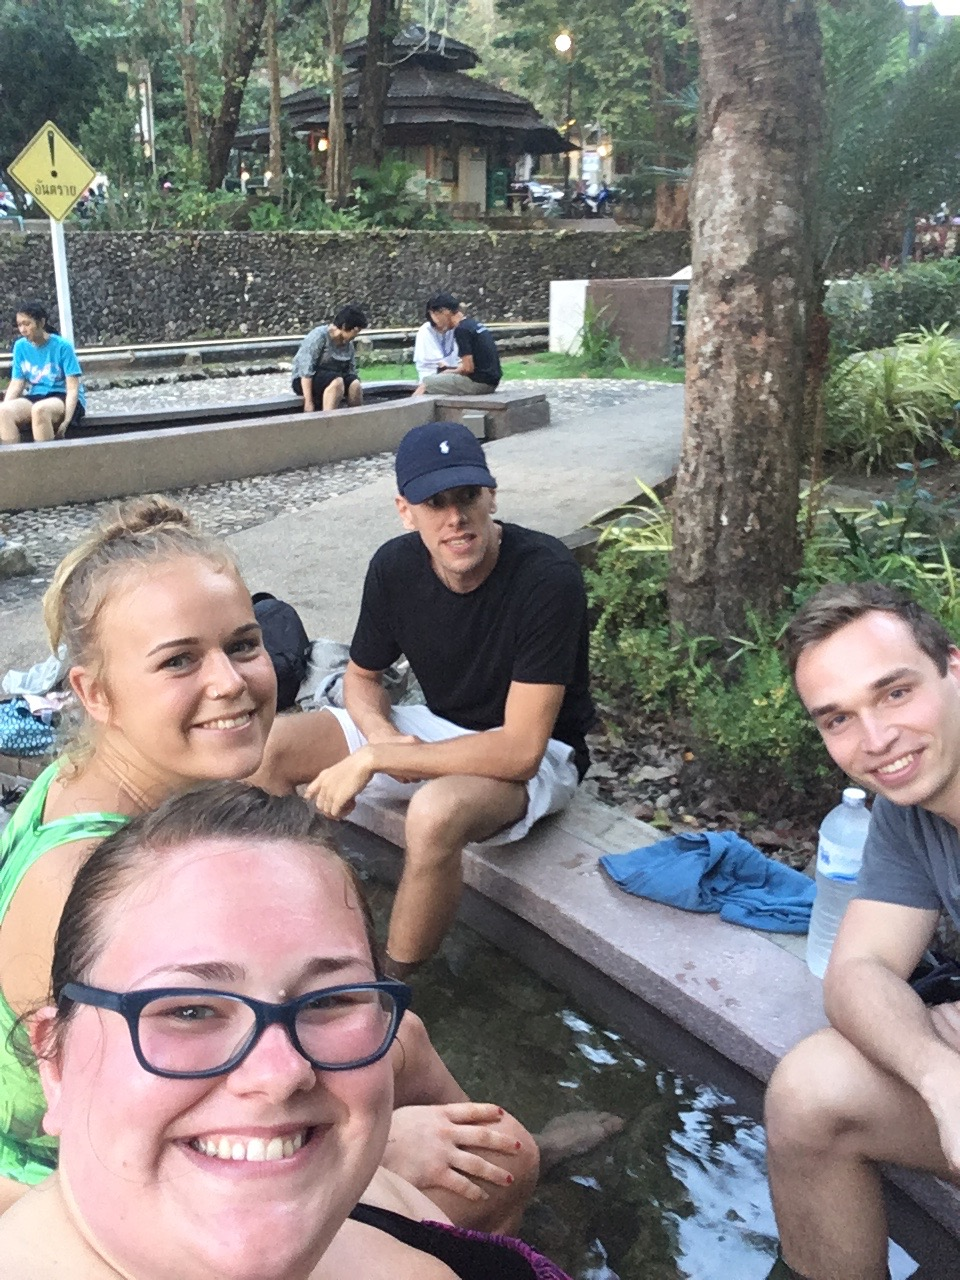 Soaking our feet in the hot springs